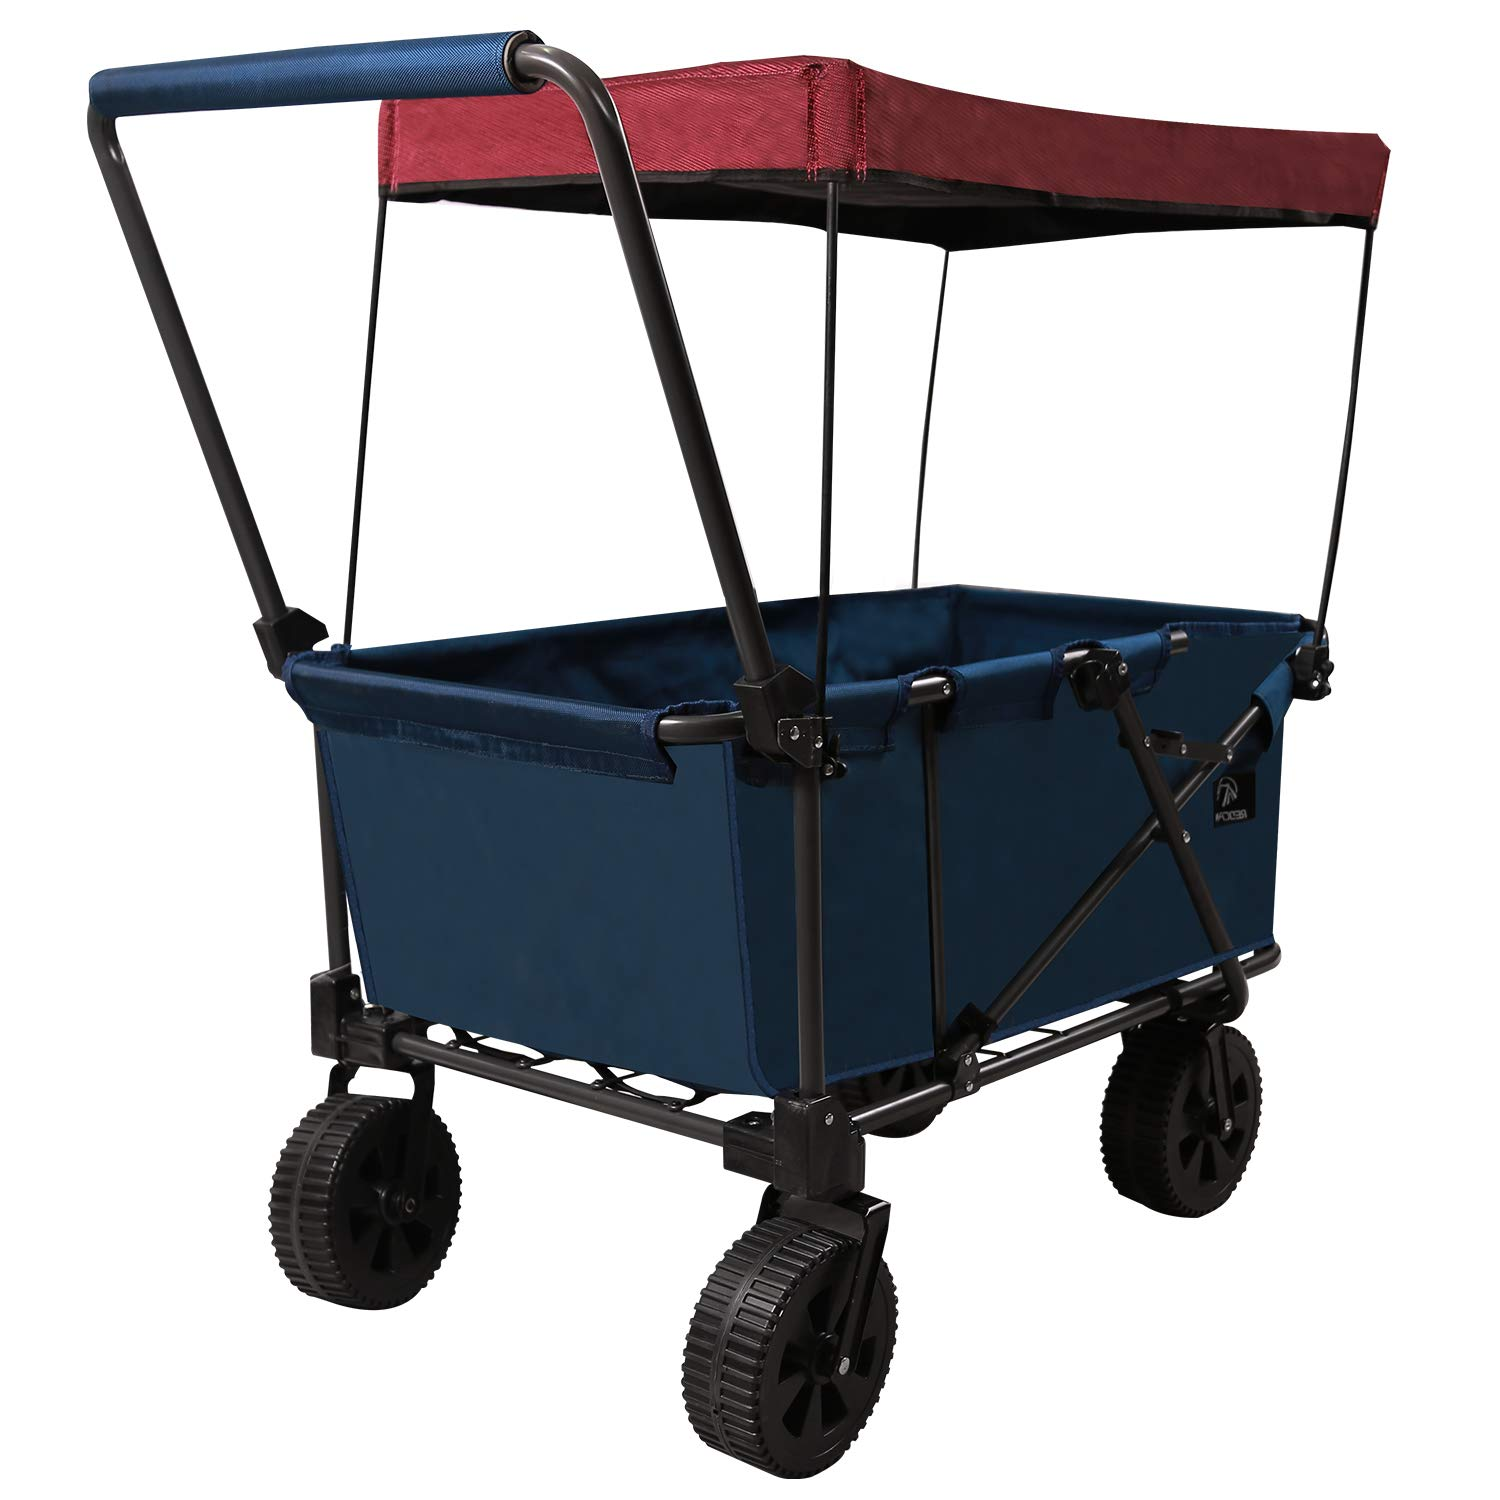 REDCAMP Folding Beach Wagon Cart with Big Wheels – 2.6 Wide, 1200D Canvas All Terrain Collapsible Utility Wagon for Sand Sports Outdoor Picnic Garden Use, Blue with Canopy